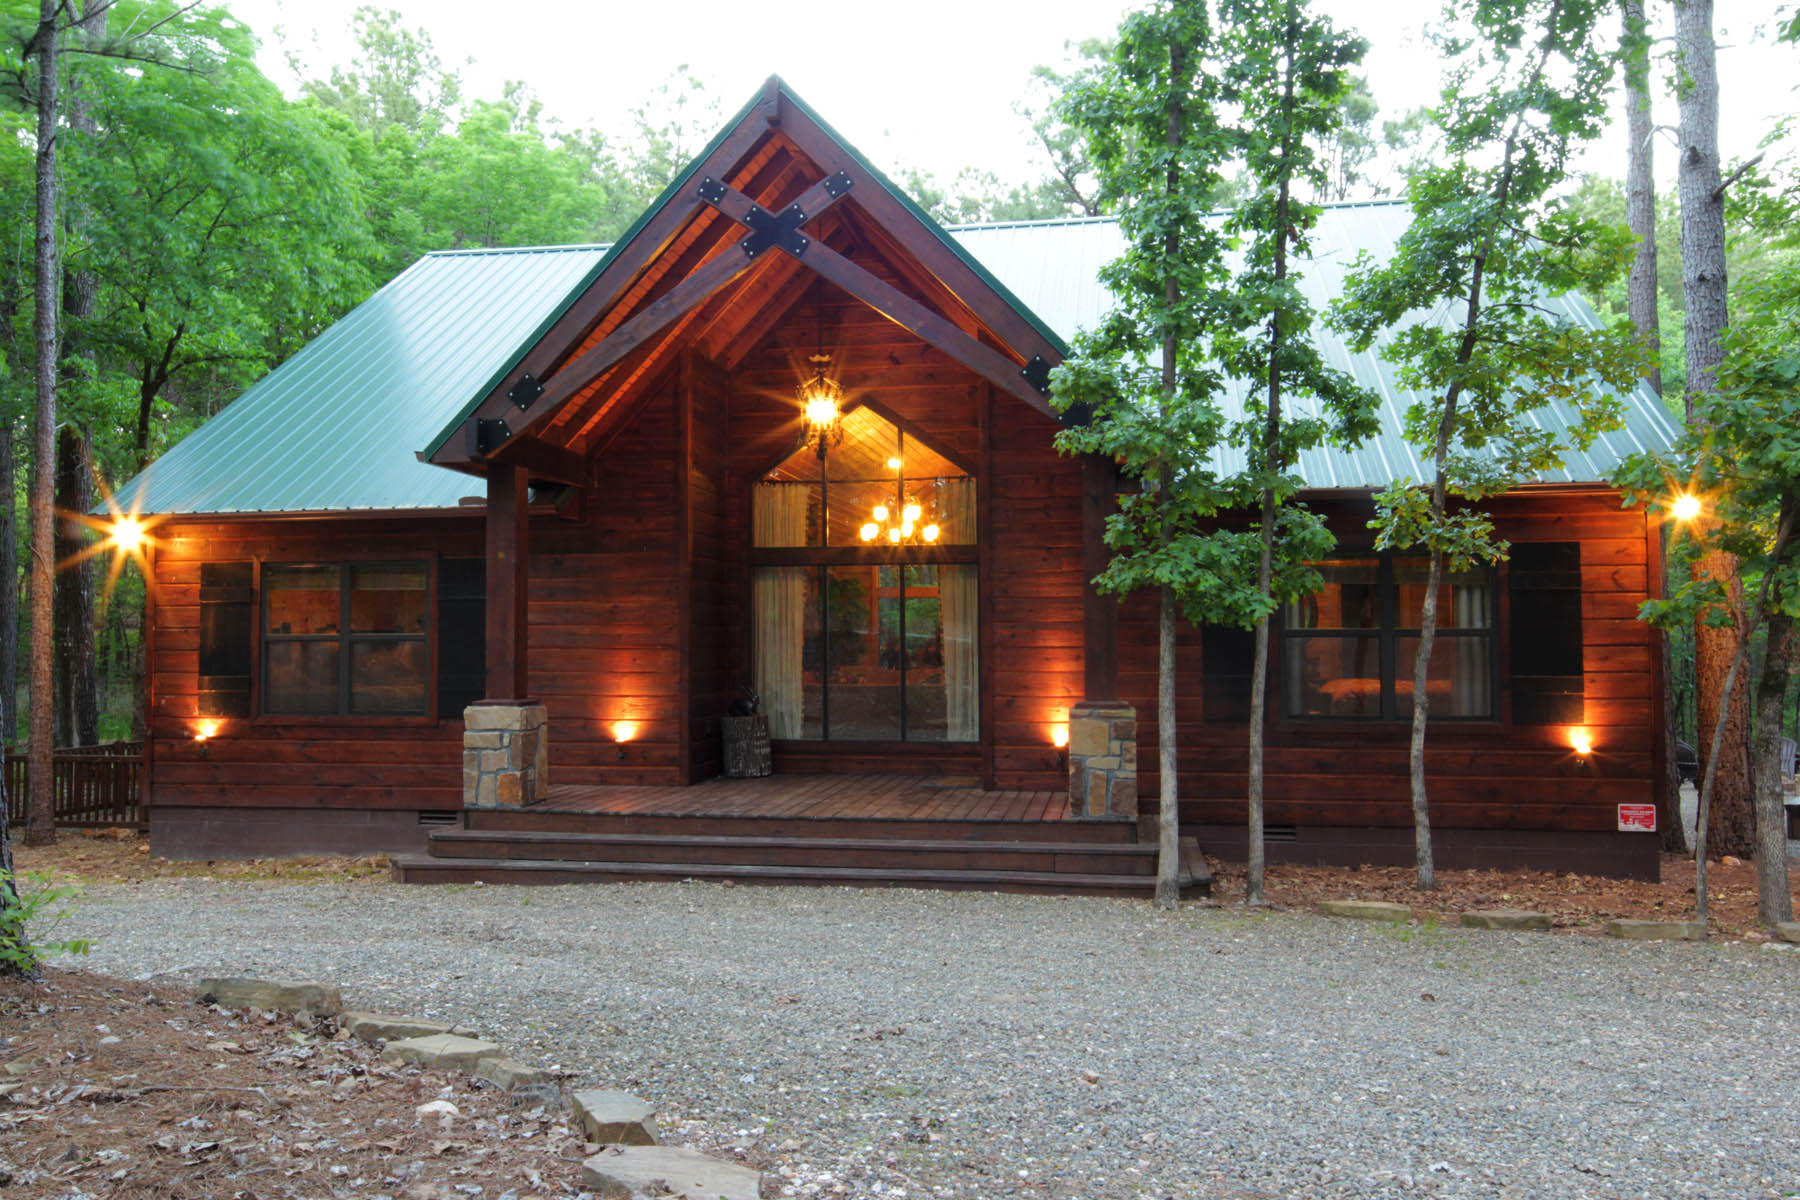 The Haven cabin exterior.